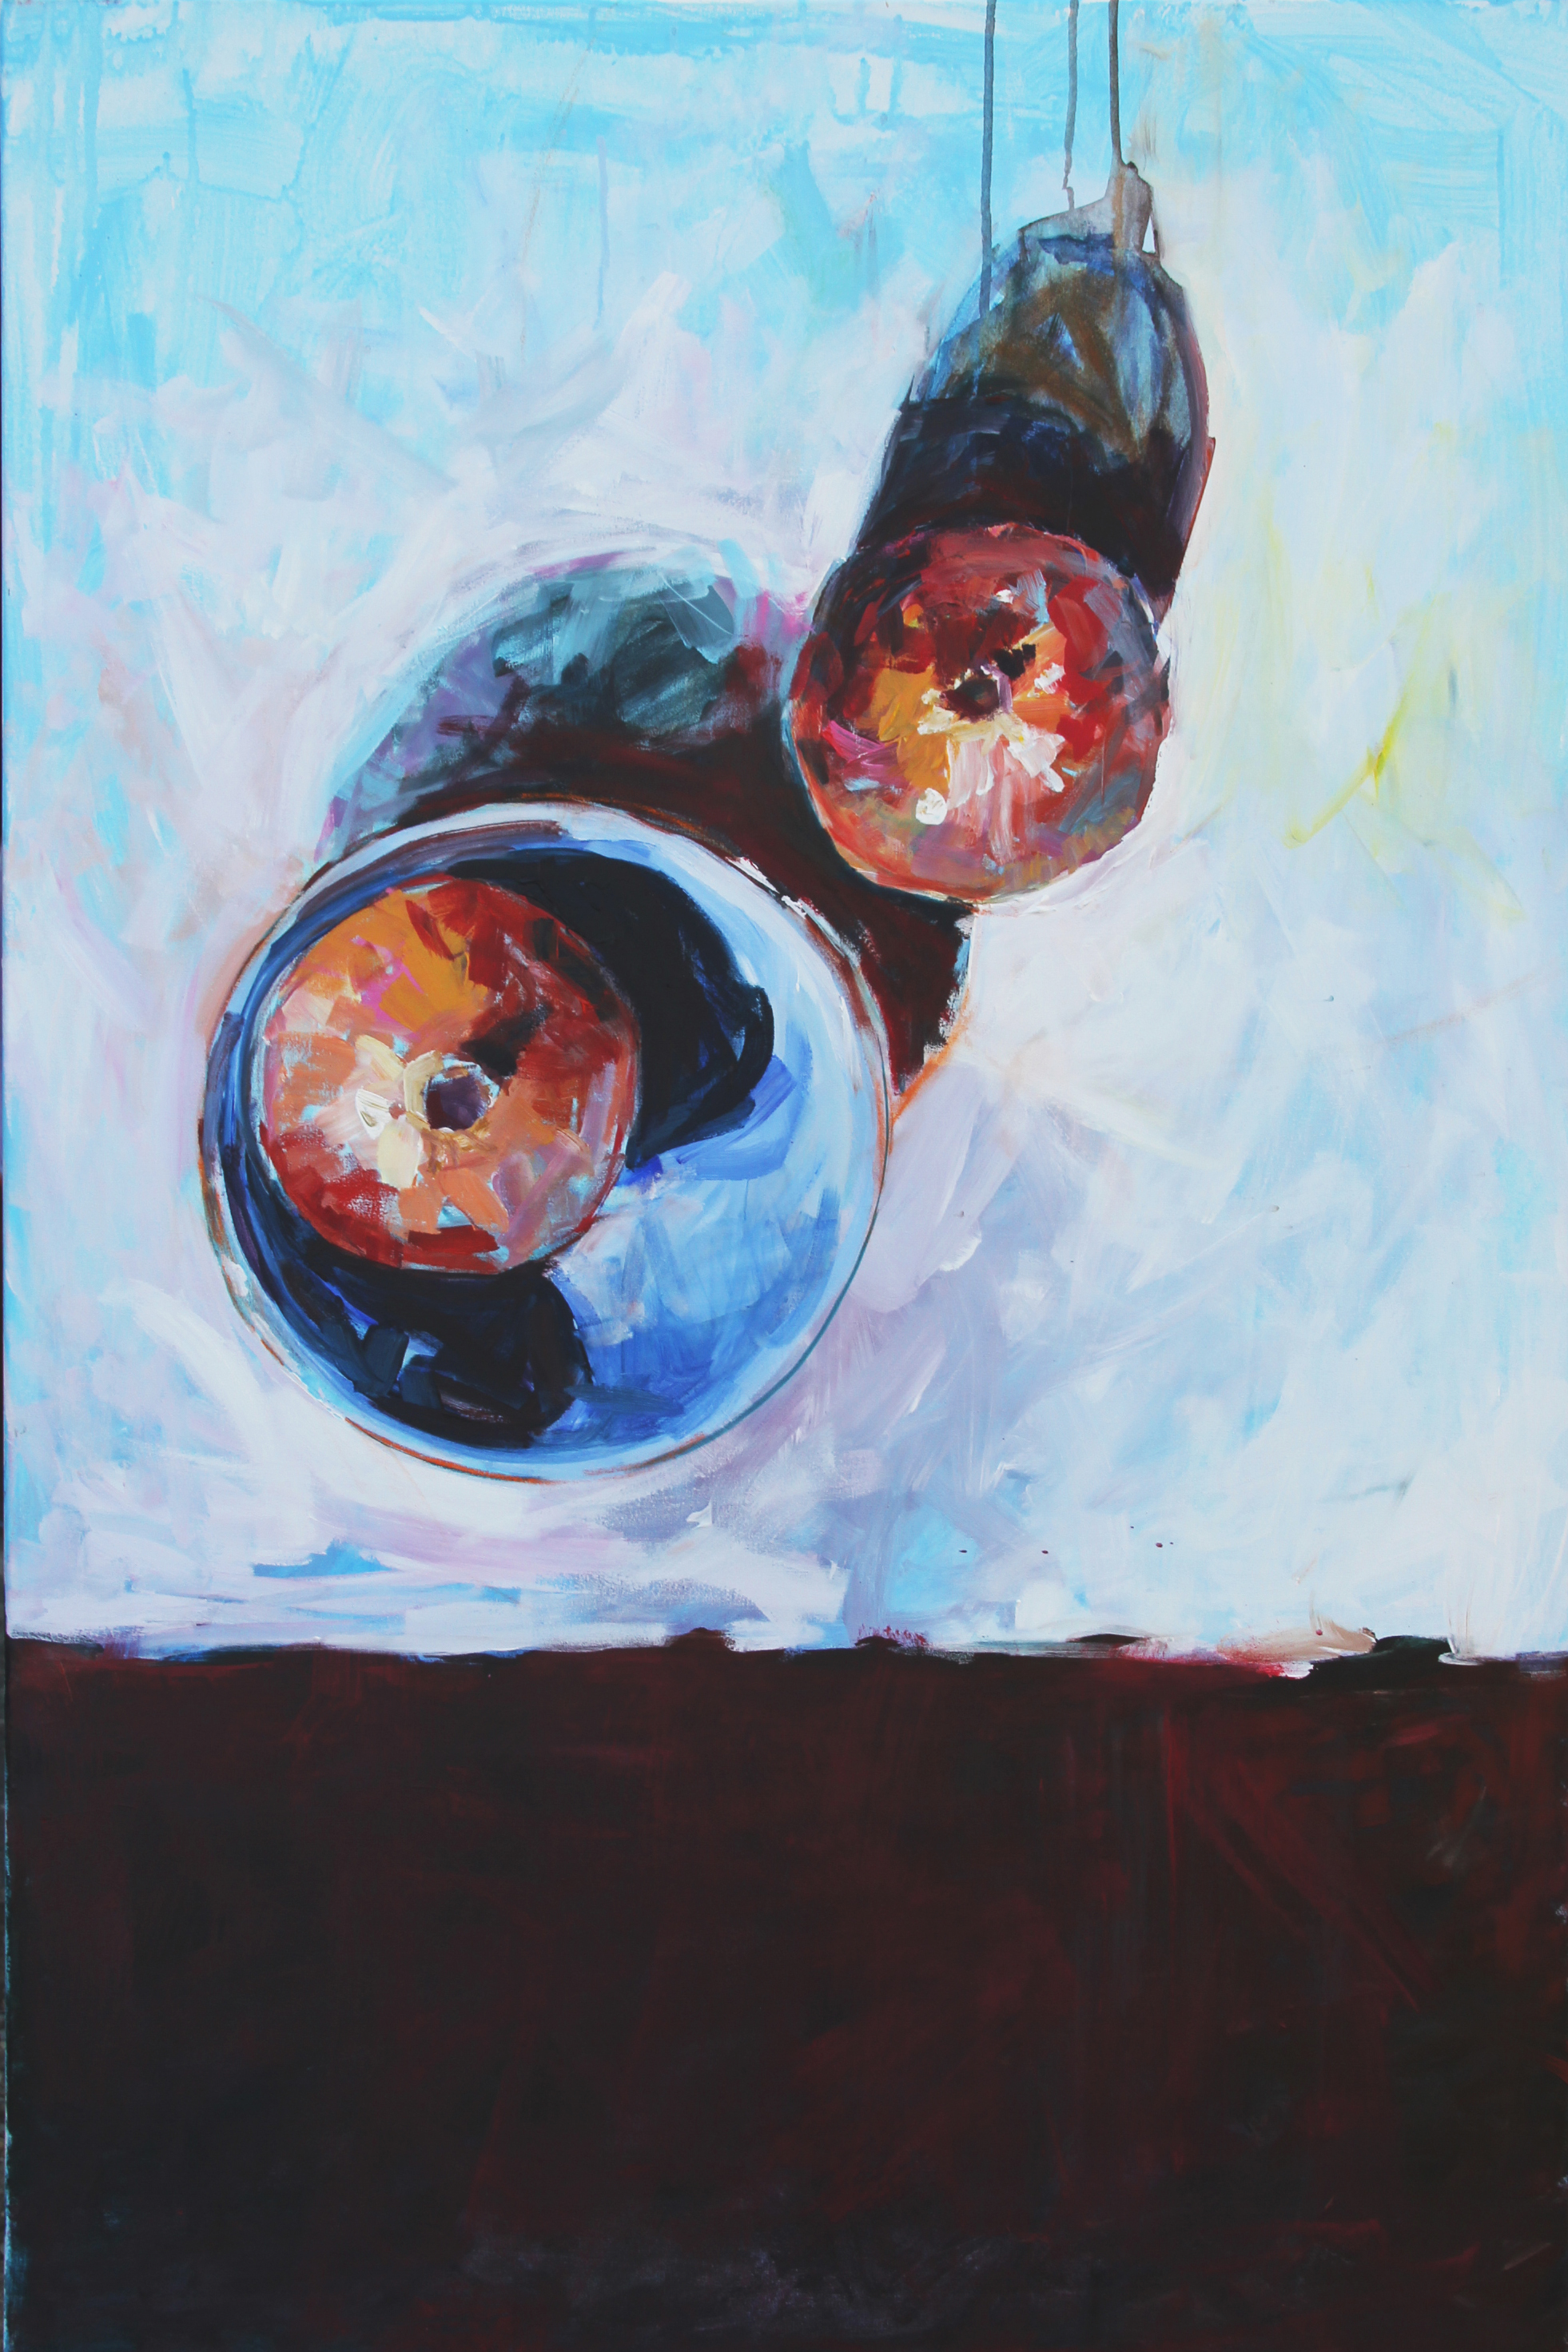 Two Pomegranates on a table, one in a blue bowl